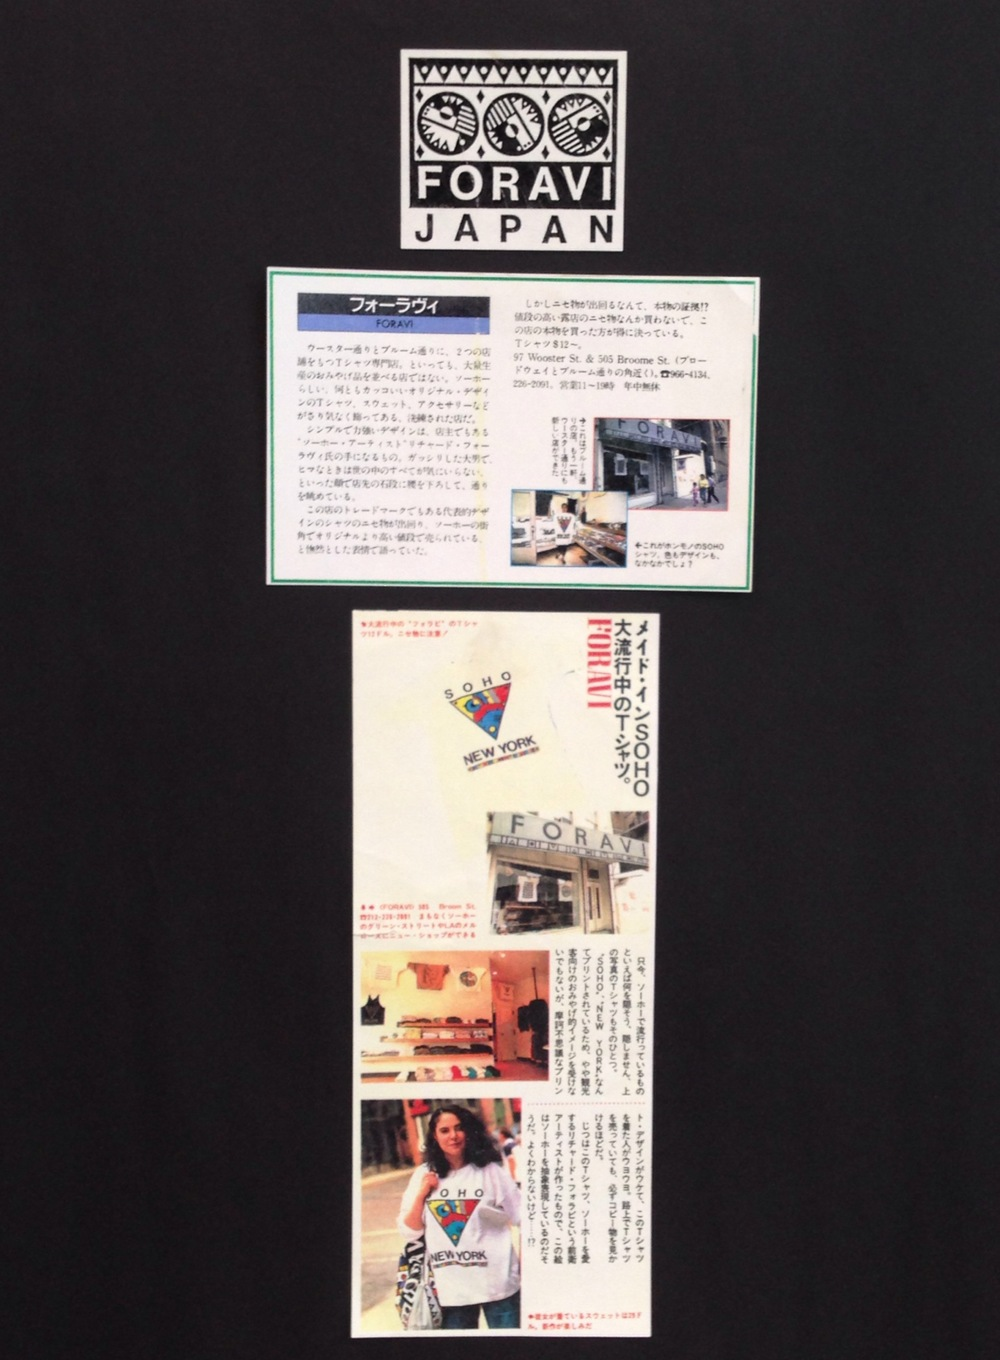 Japanese Publication promoting Foravi original SOHO T-shirt and Tokyo location   (Lower Left Corner): Devora Avikzer Goltry wearing the coveted SOHO T-shirt